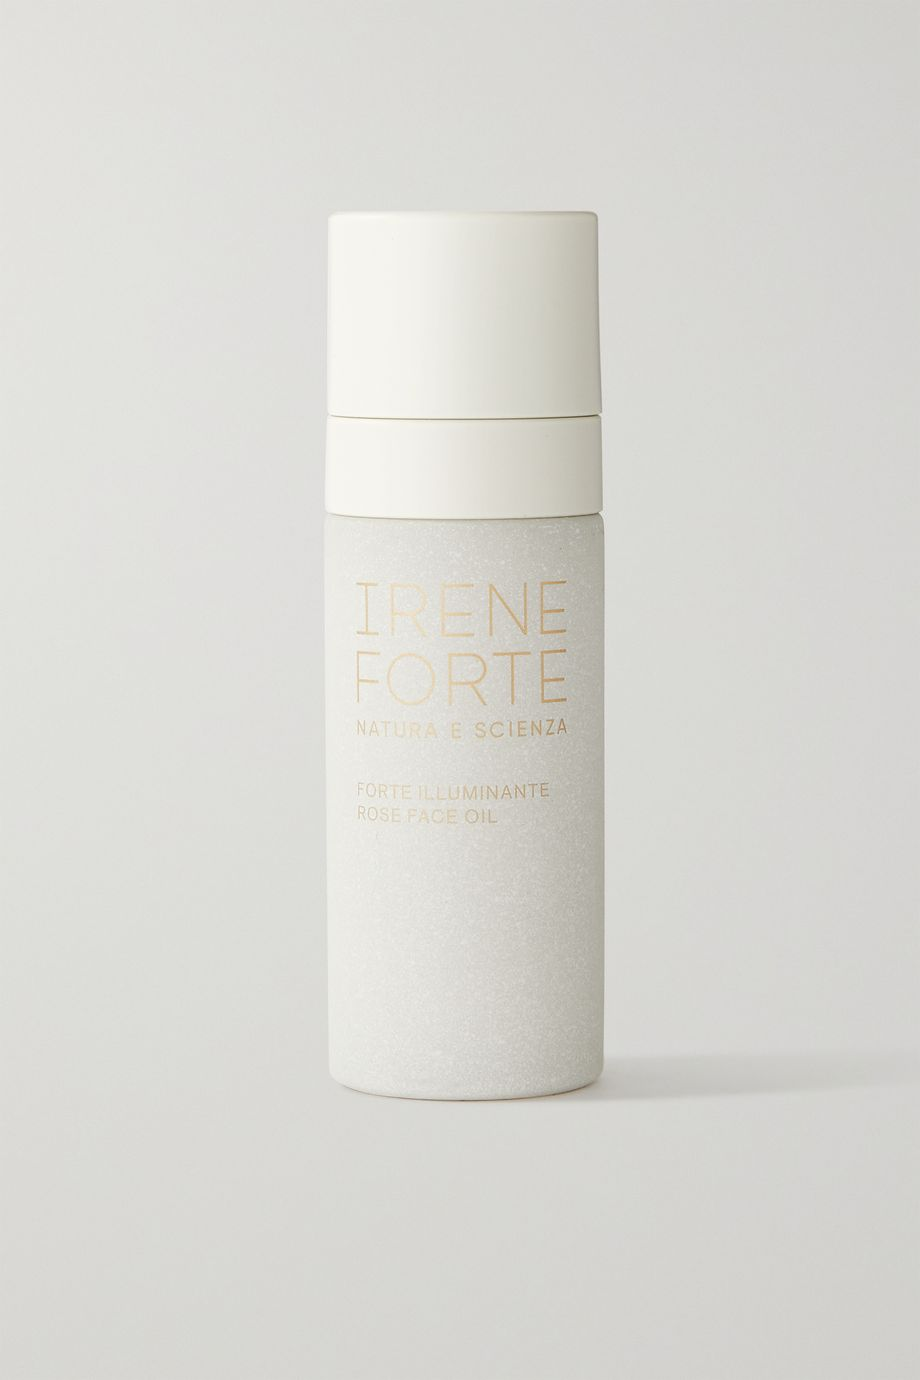 Irene Forte + NET SUSTAIN Age-Defying Rose Face Oil, 30ml